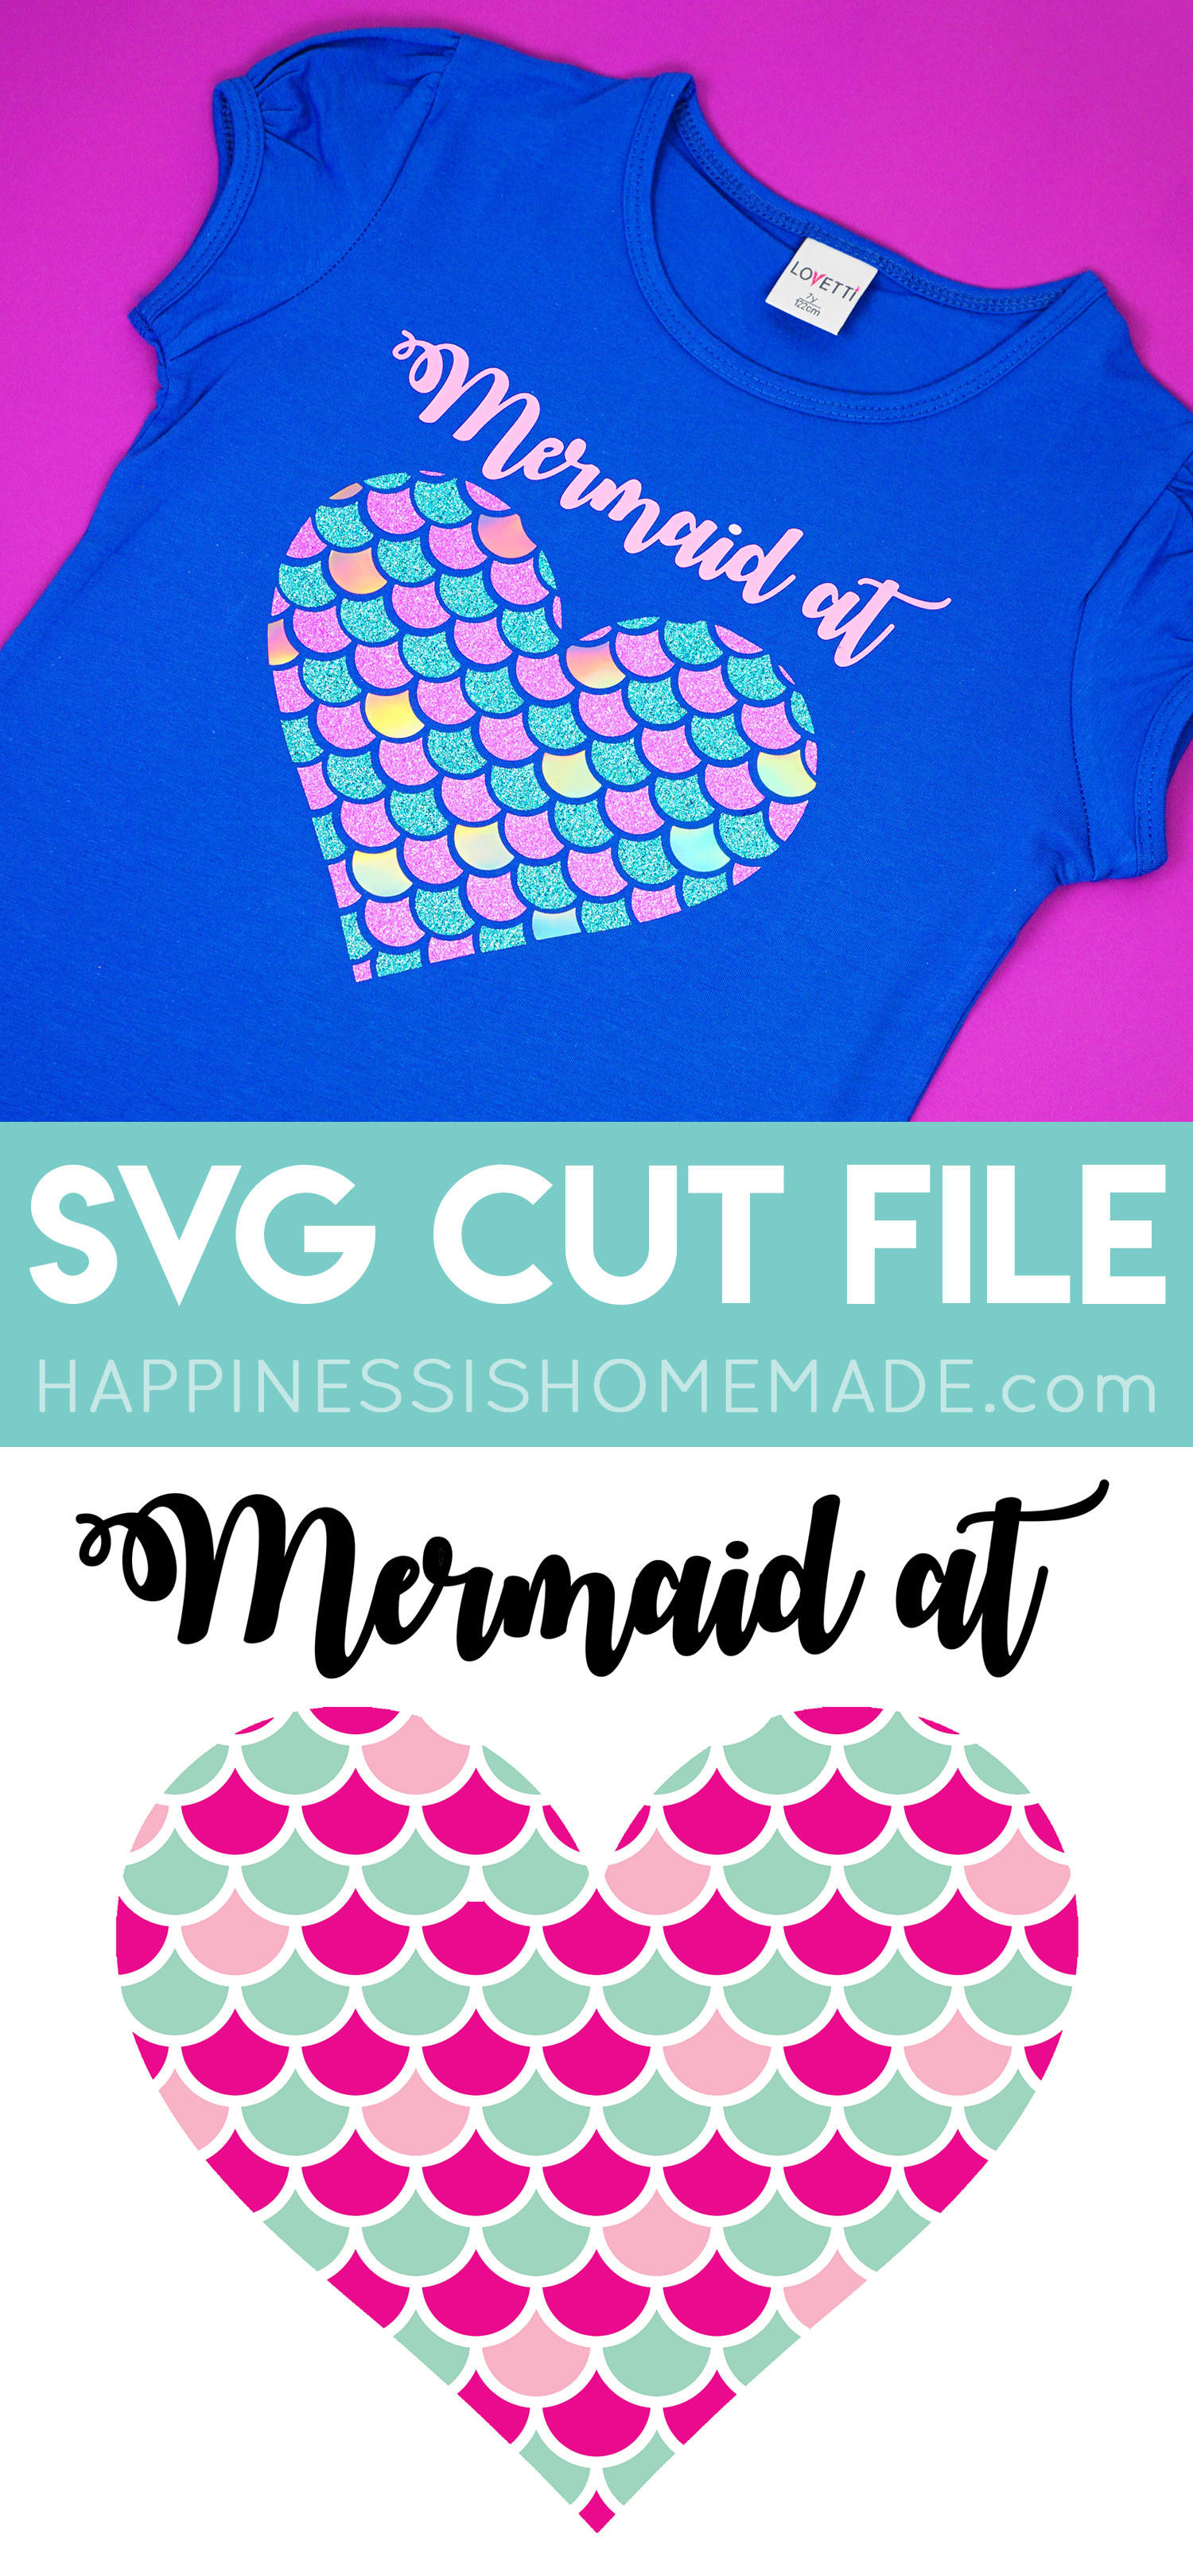 Adorable Mermaid Svg File Happiness Is Homemade